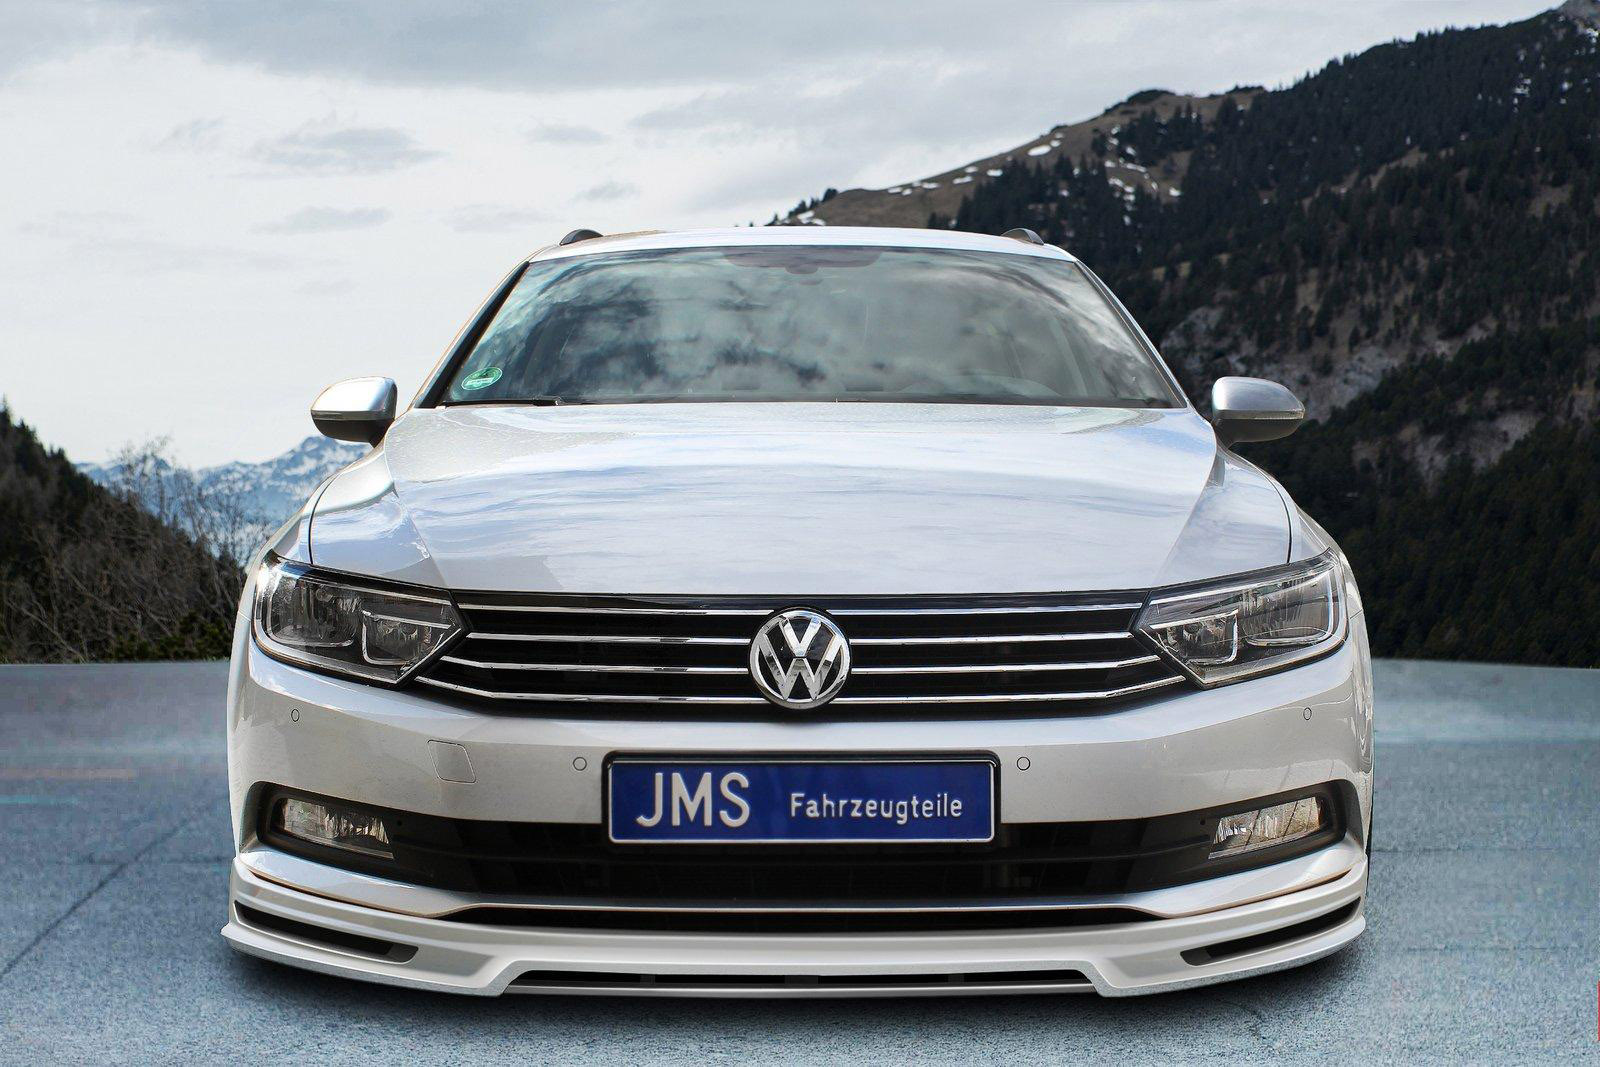 jms releases tuning kit for volkswagen passat. Black Bedroom Furniture Sets. Home Design Ideas